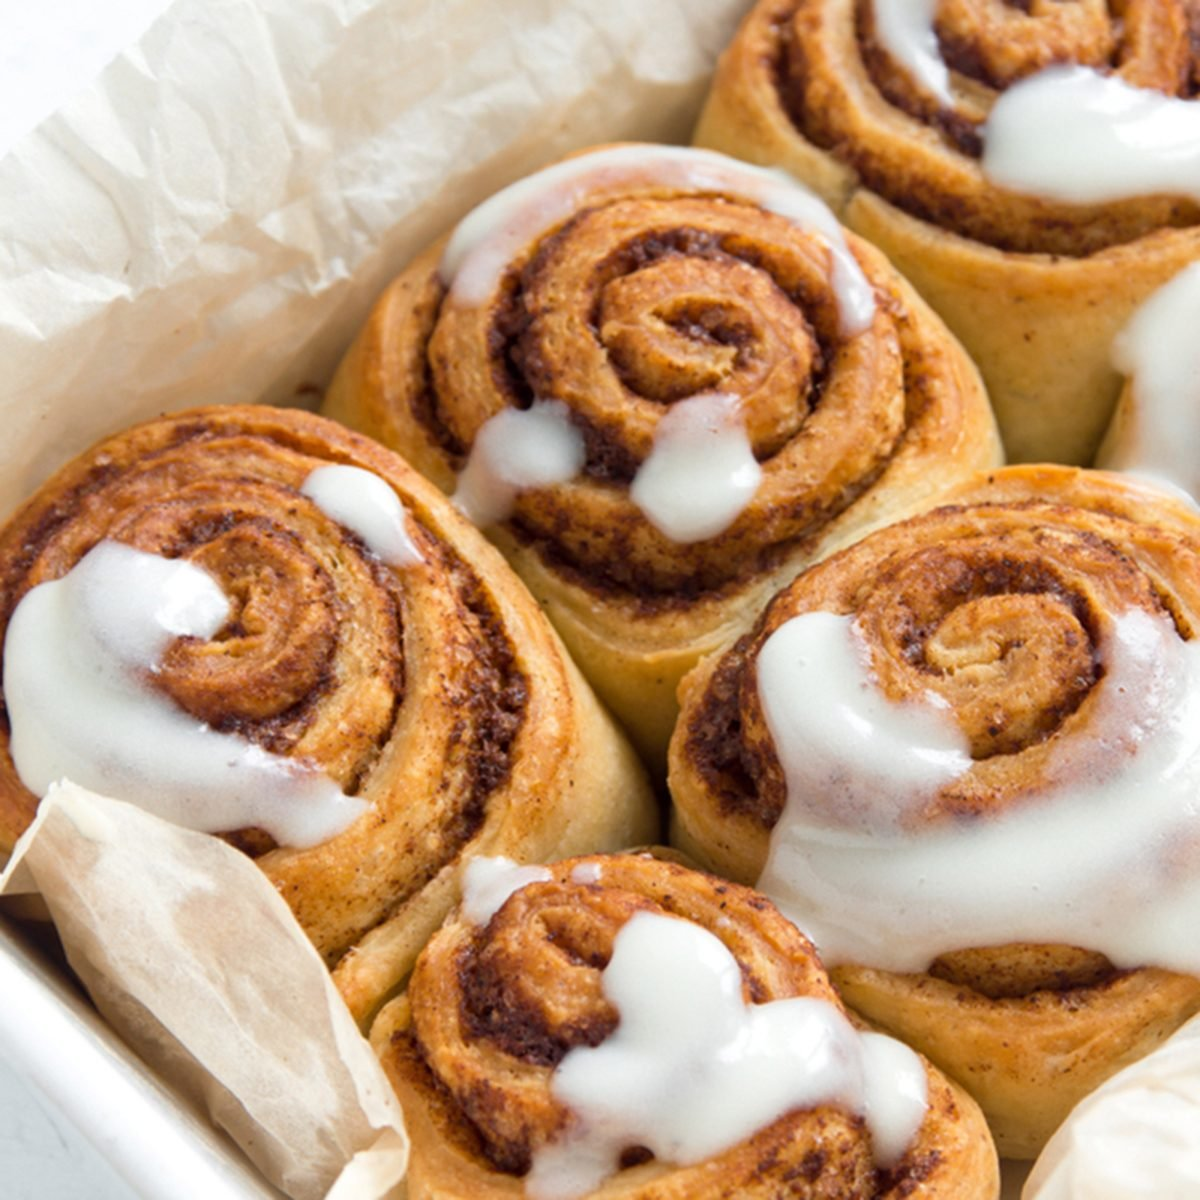 Cinnamon rolls or cinnabons with cream sauce, homemade recipe preparation sweet traditional dessert buns pastry food close up.